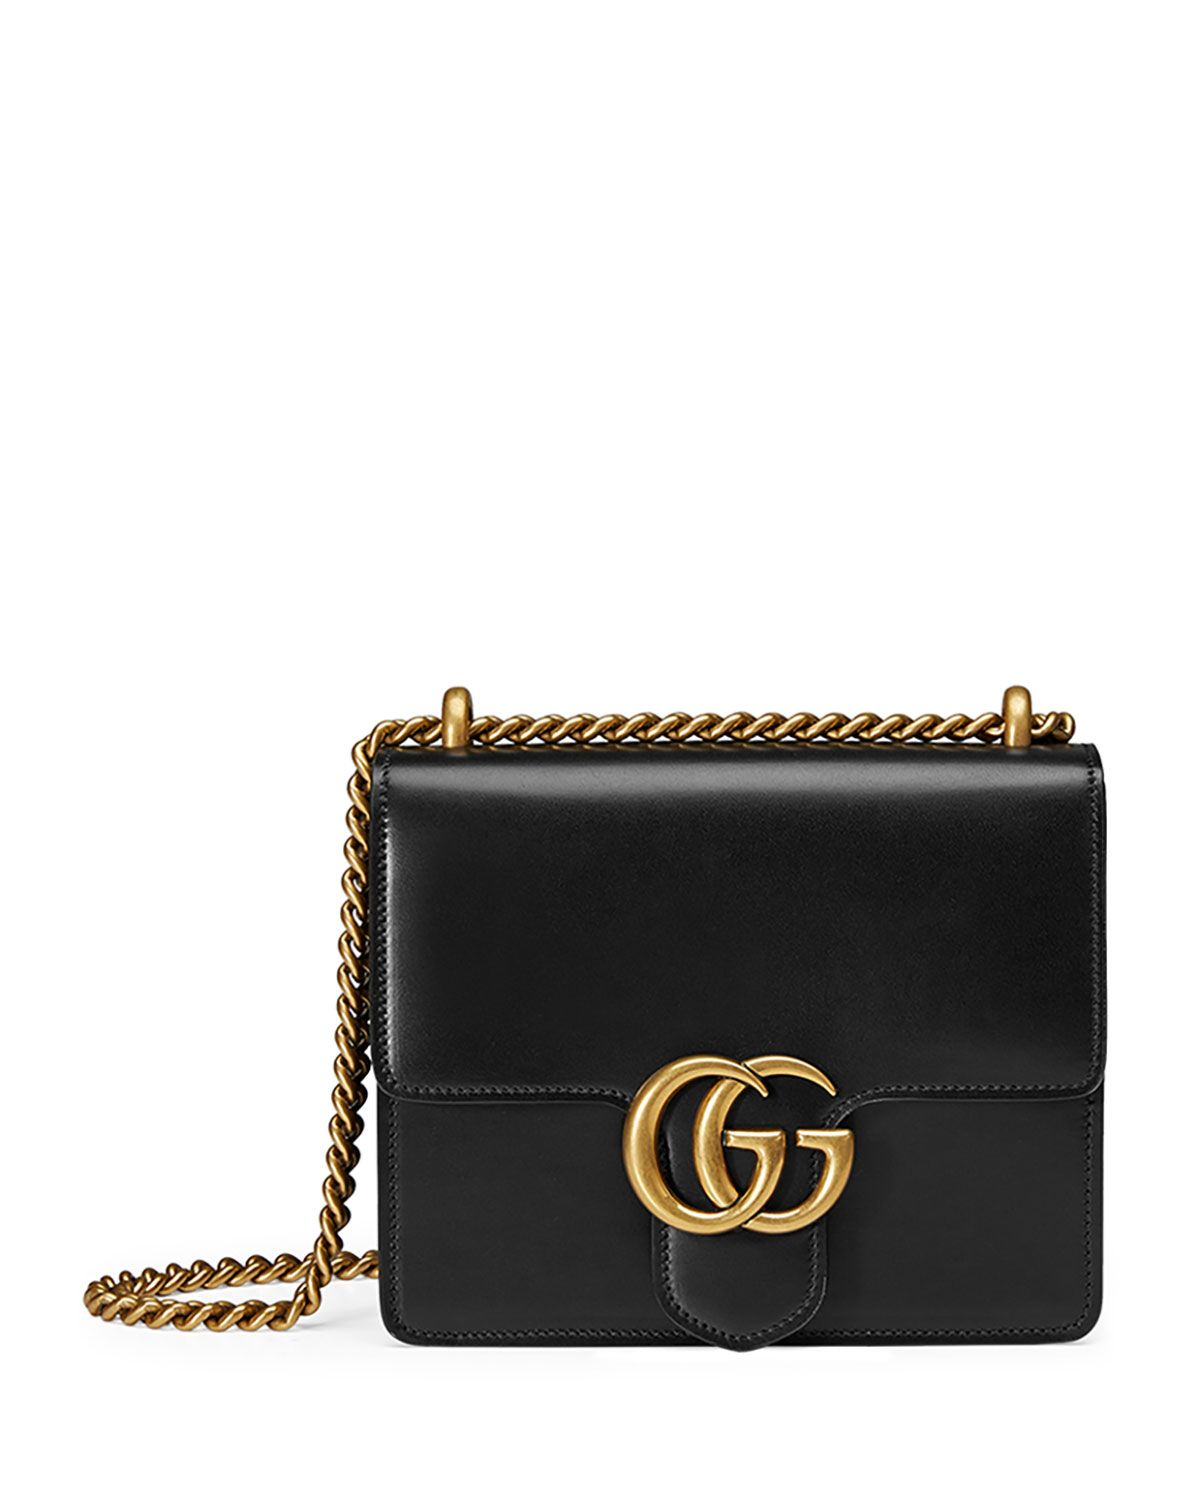 4bec3979941b Gucci GG Marmont Small Leather Shoulder Bag, Black, Women's ...